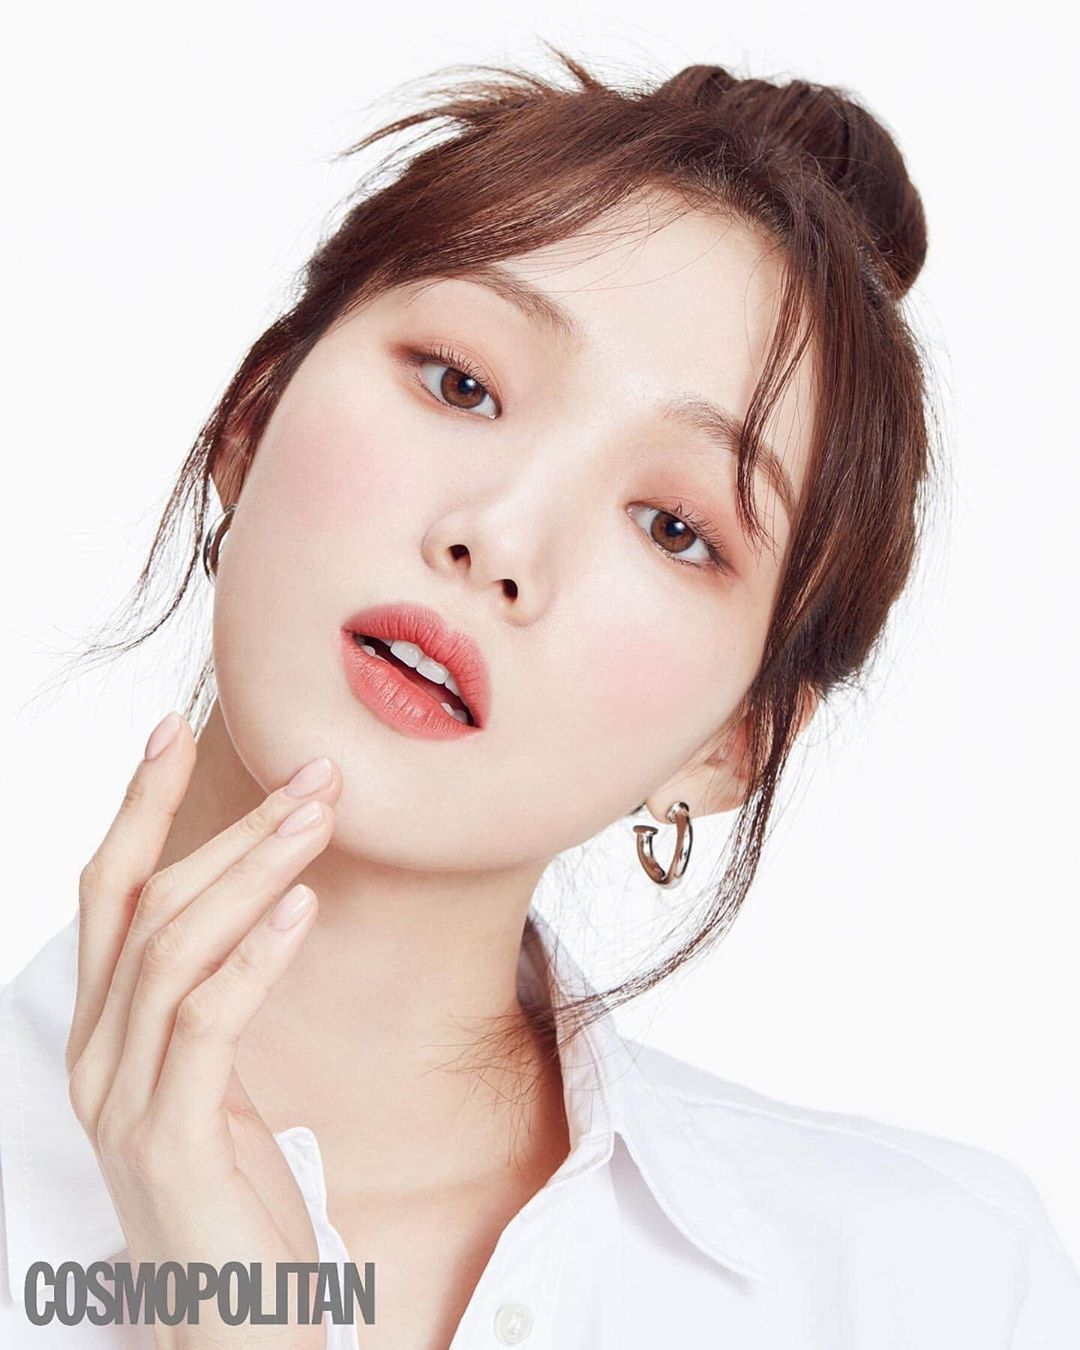 lee sung kyung cosmo